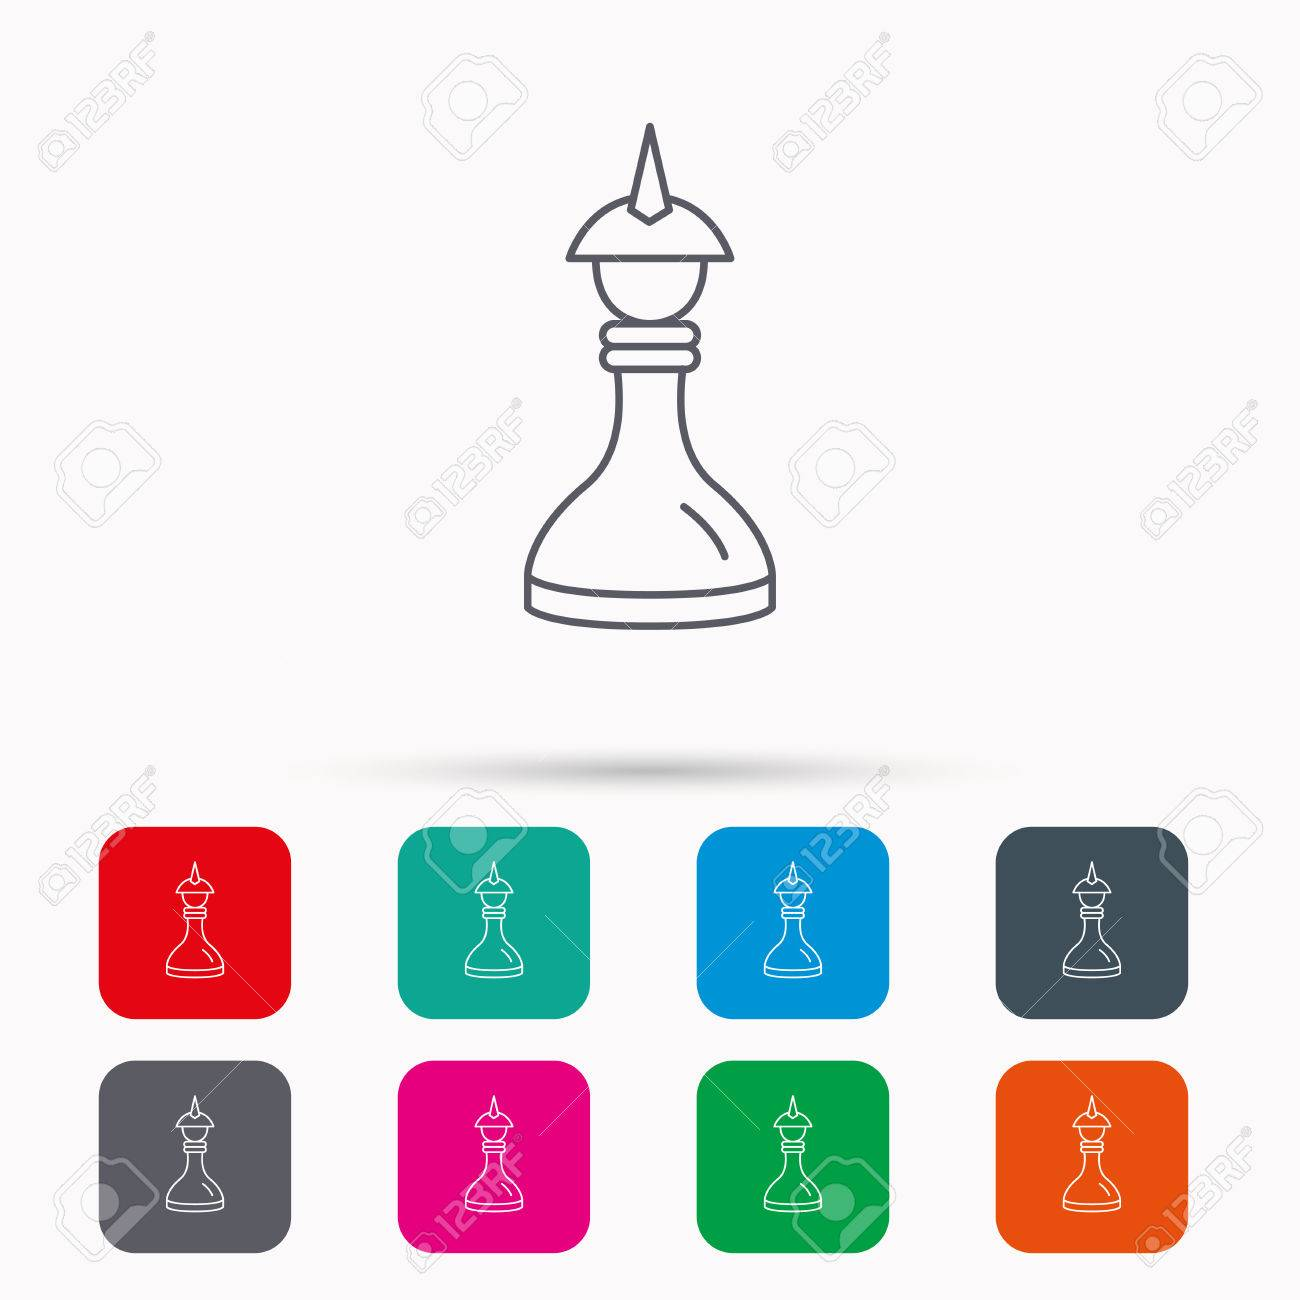 Strategy Icon Chess Queen Or King Sign Mind Game Symbol Linear